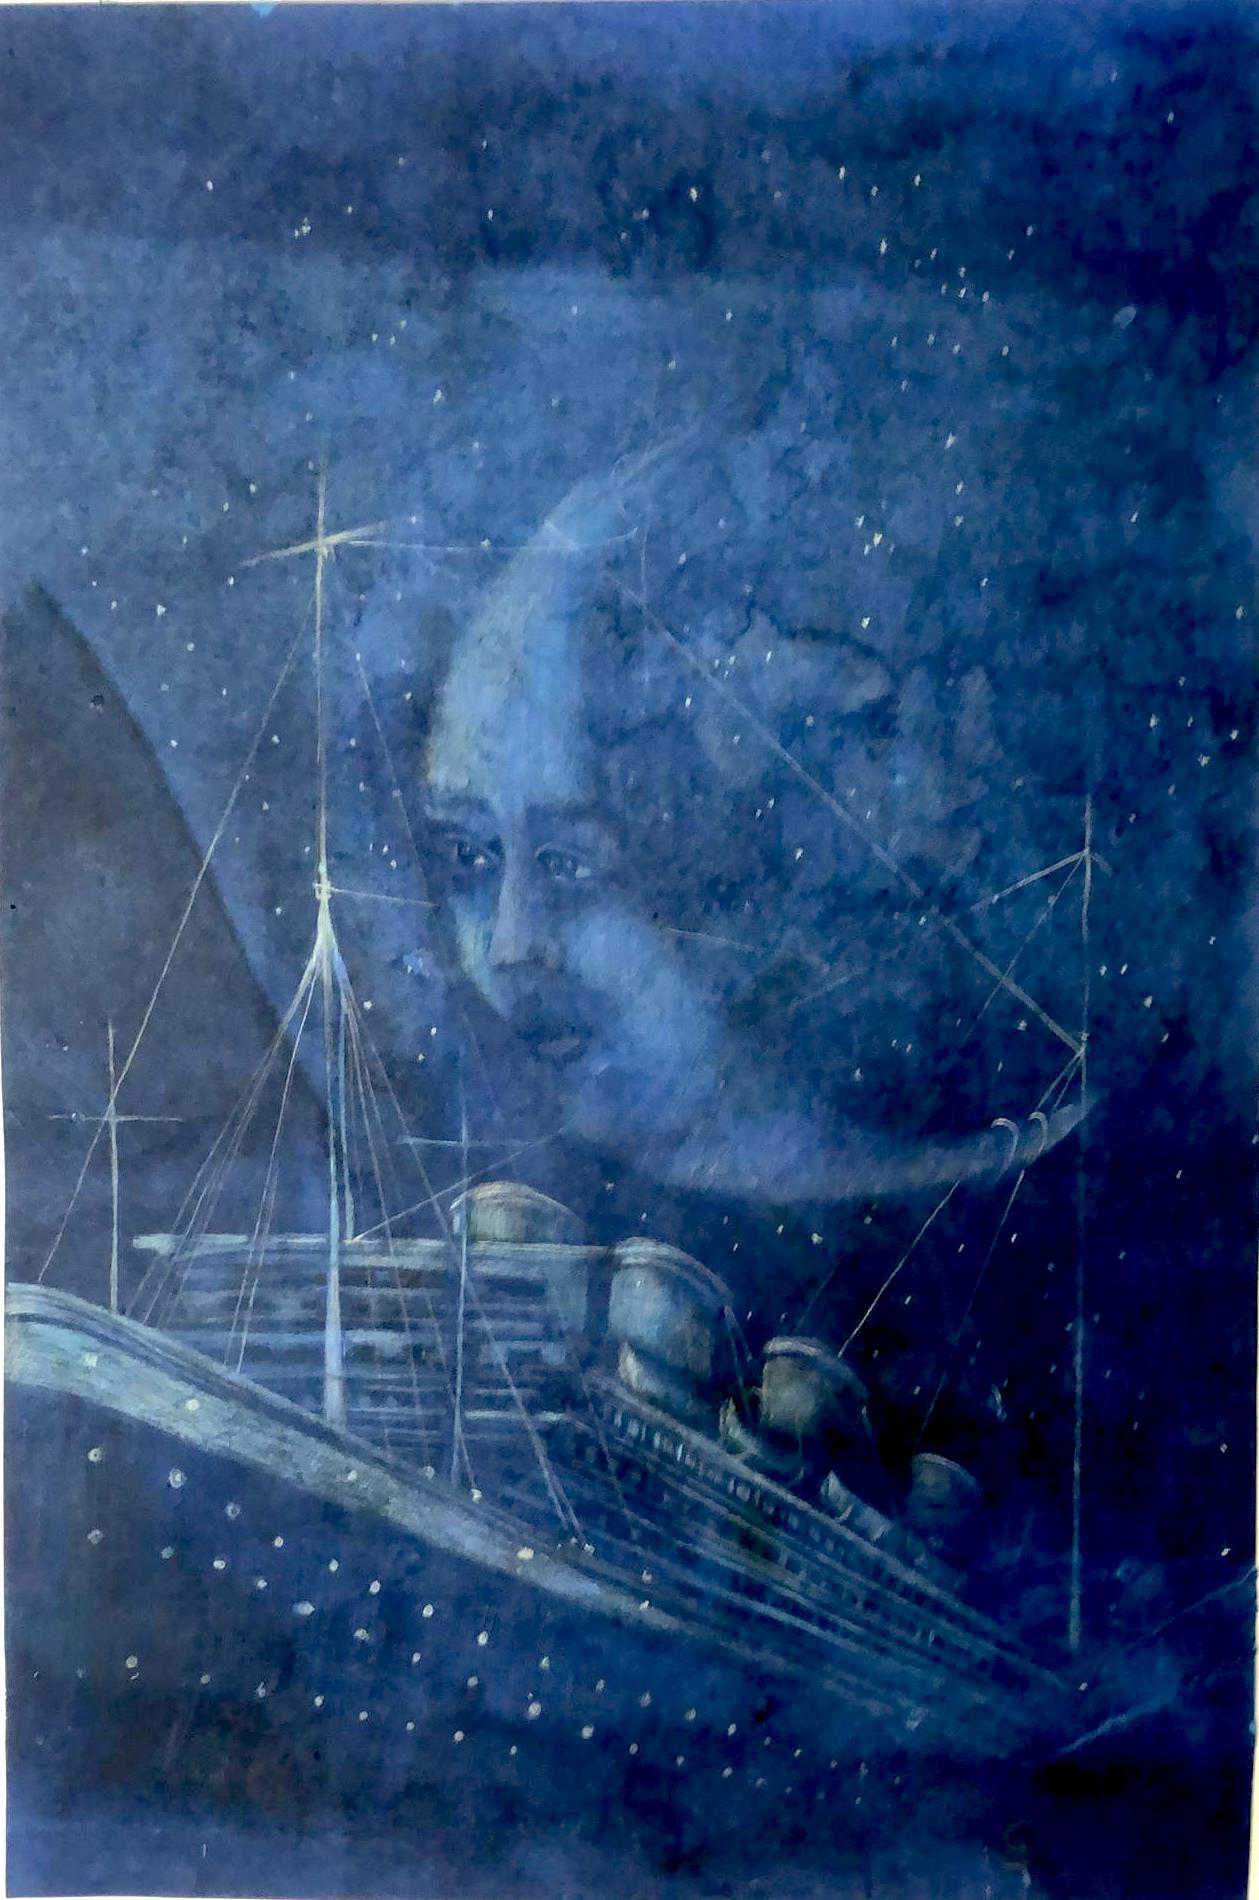 Moon catcher,2019, 90x 60cm,monotype